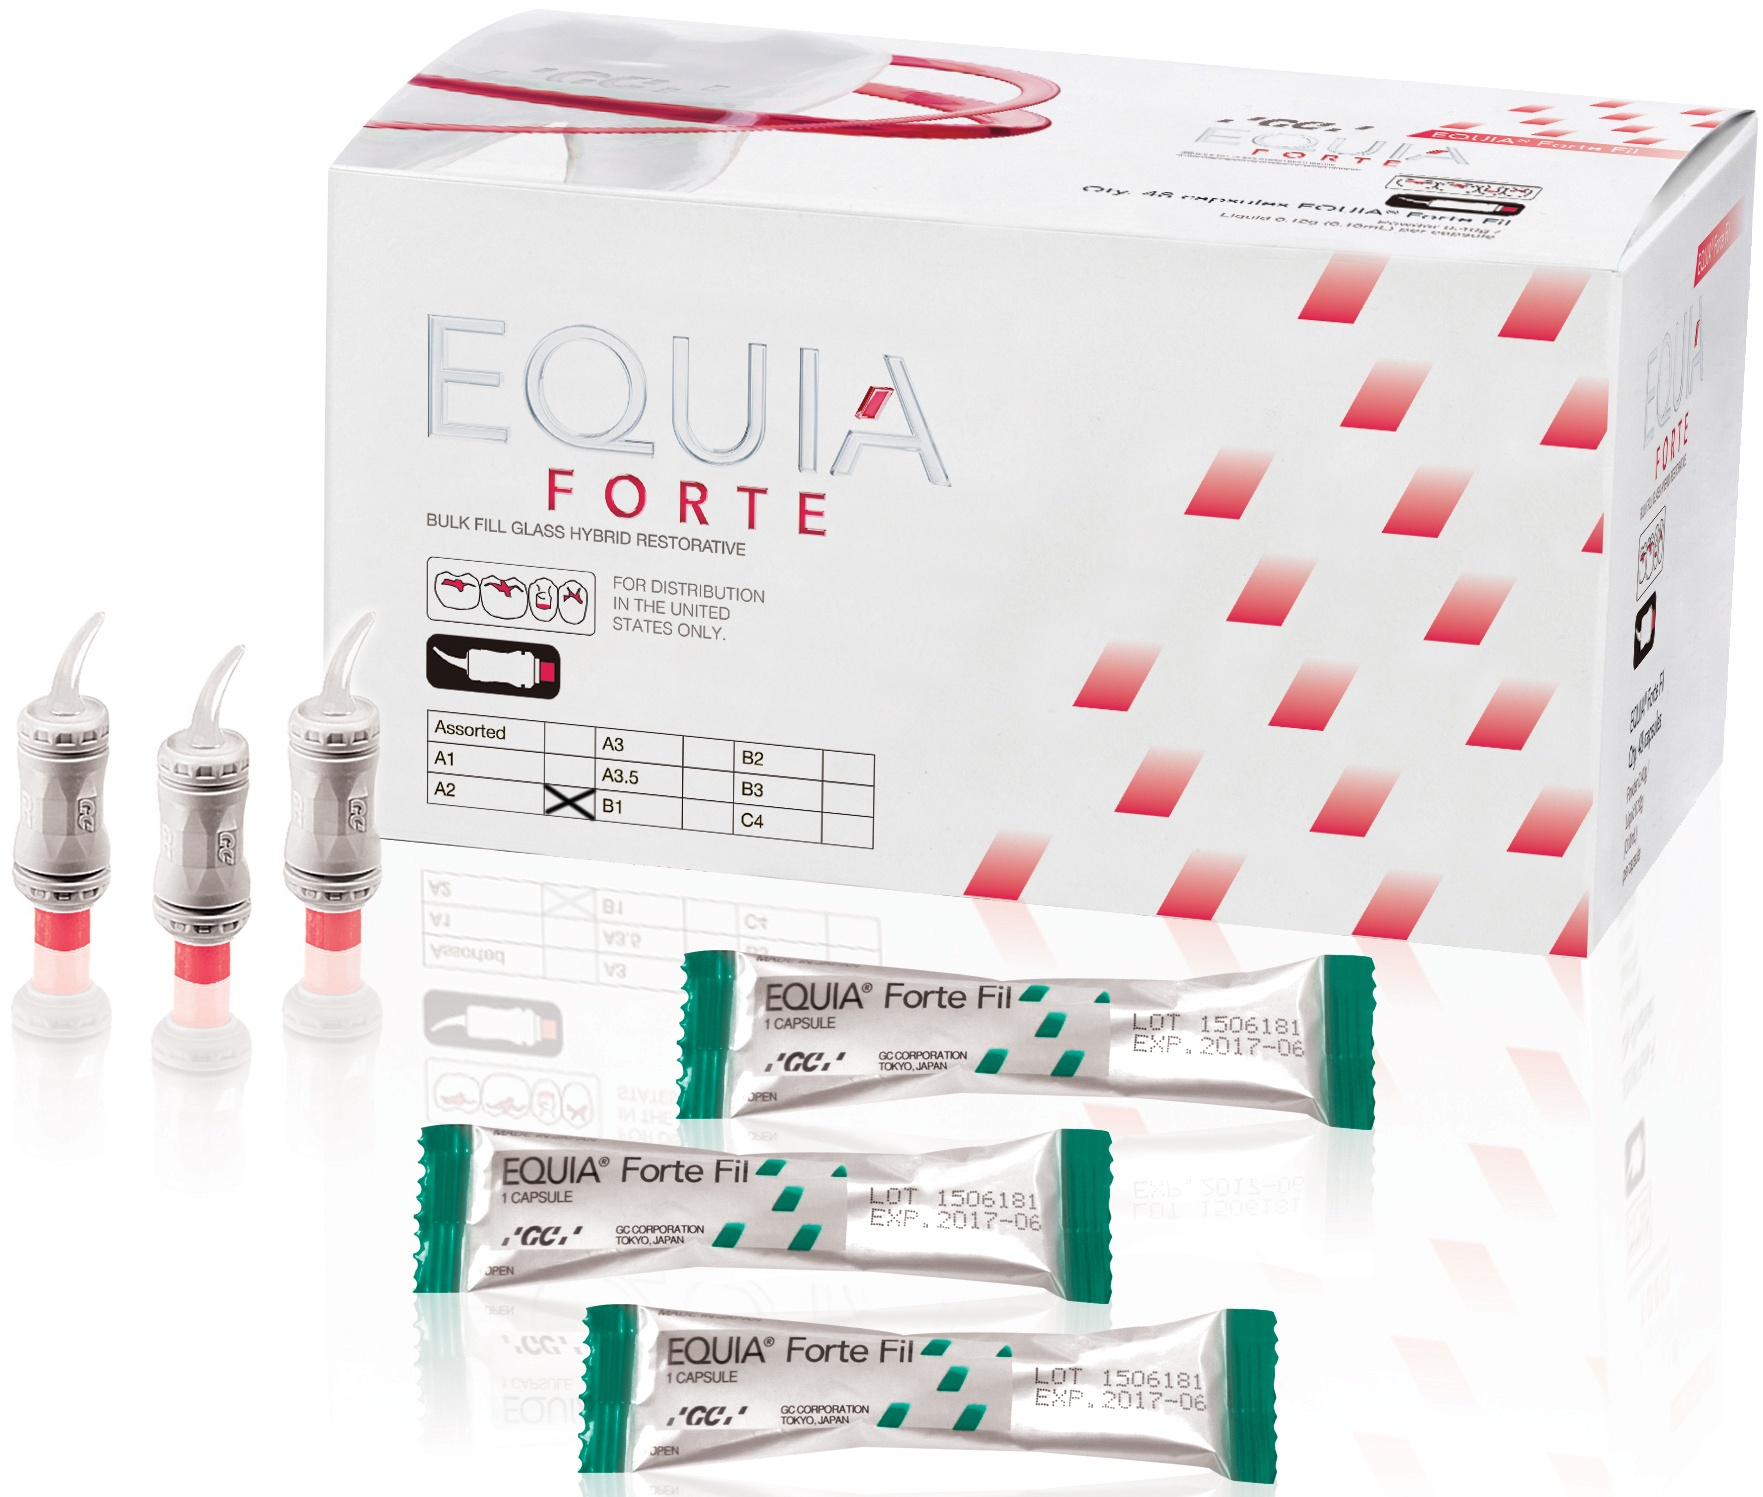 EQUIA Forte, Promo Pack, 100 Capsules A2, EEP